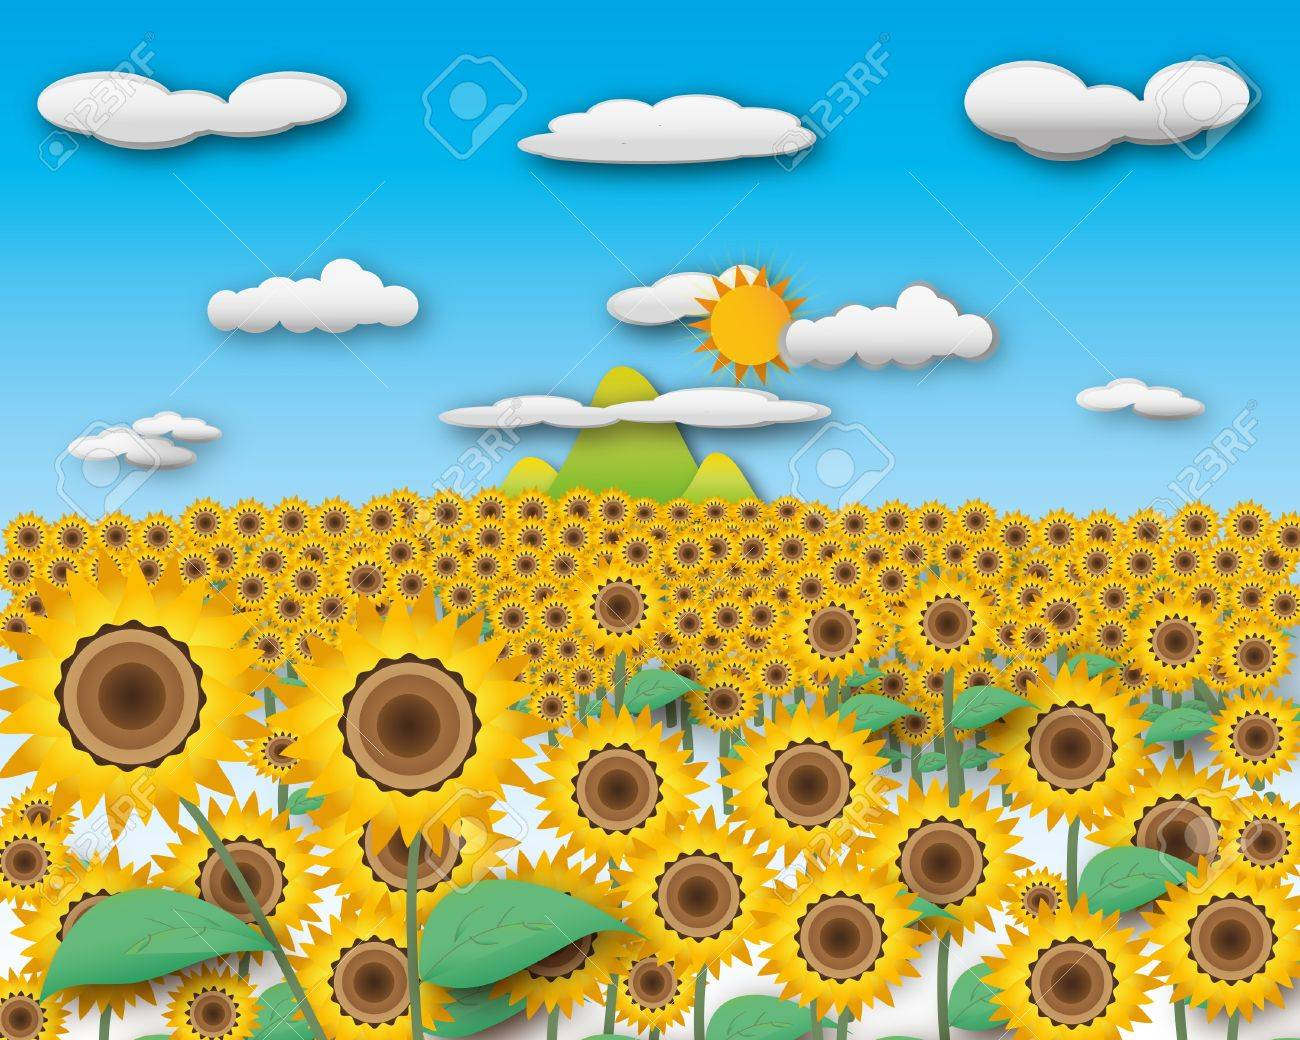 Sunflower field and landscape mountain in cloudy sky with sunny. Stock Photo - 12350184